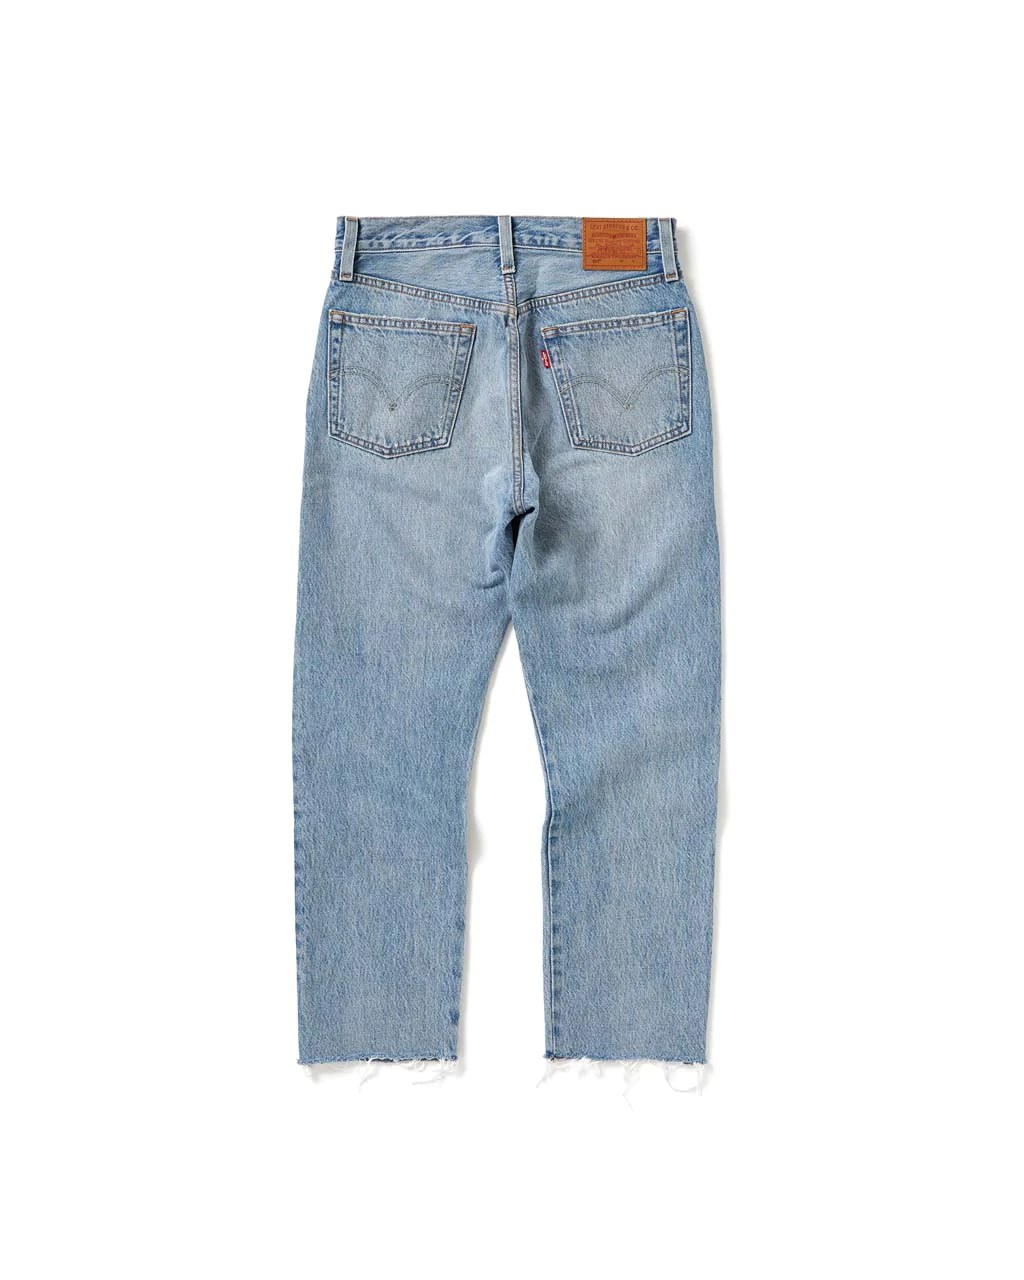 Levi Jeans 501 501 Crop Jeans Diamond In The Rough By Levi S Jeans Ban Do